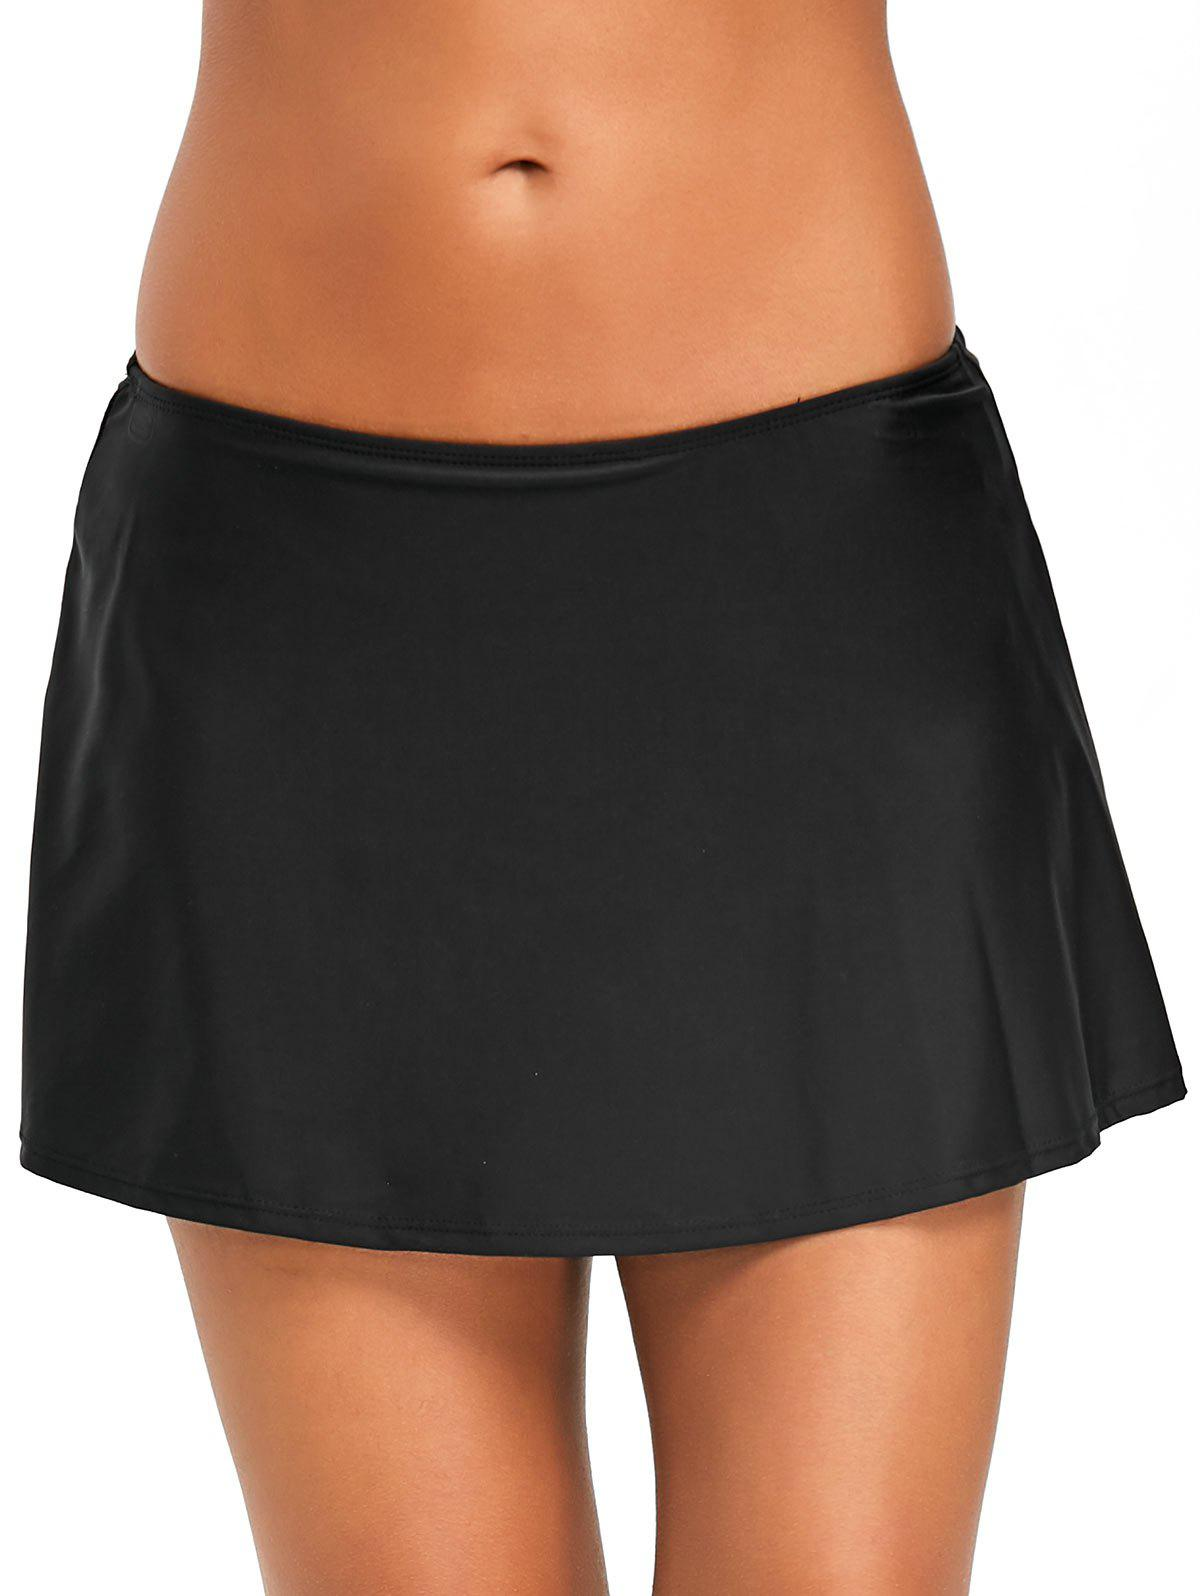 Buy Beach Summer Swim Skirt